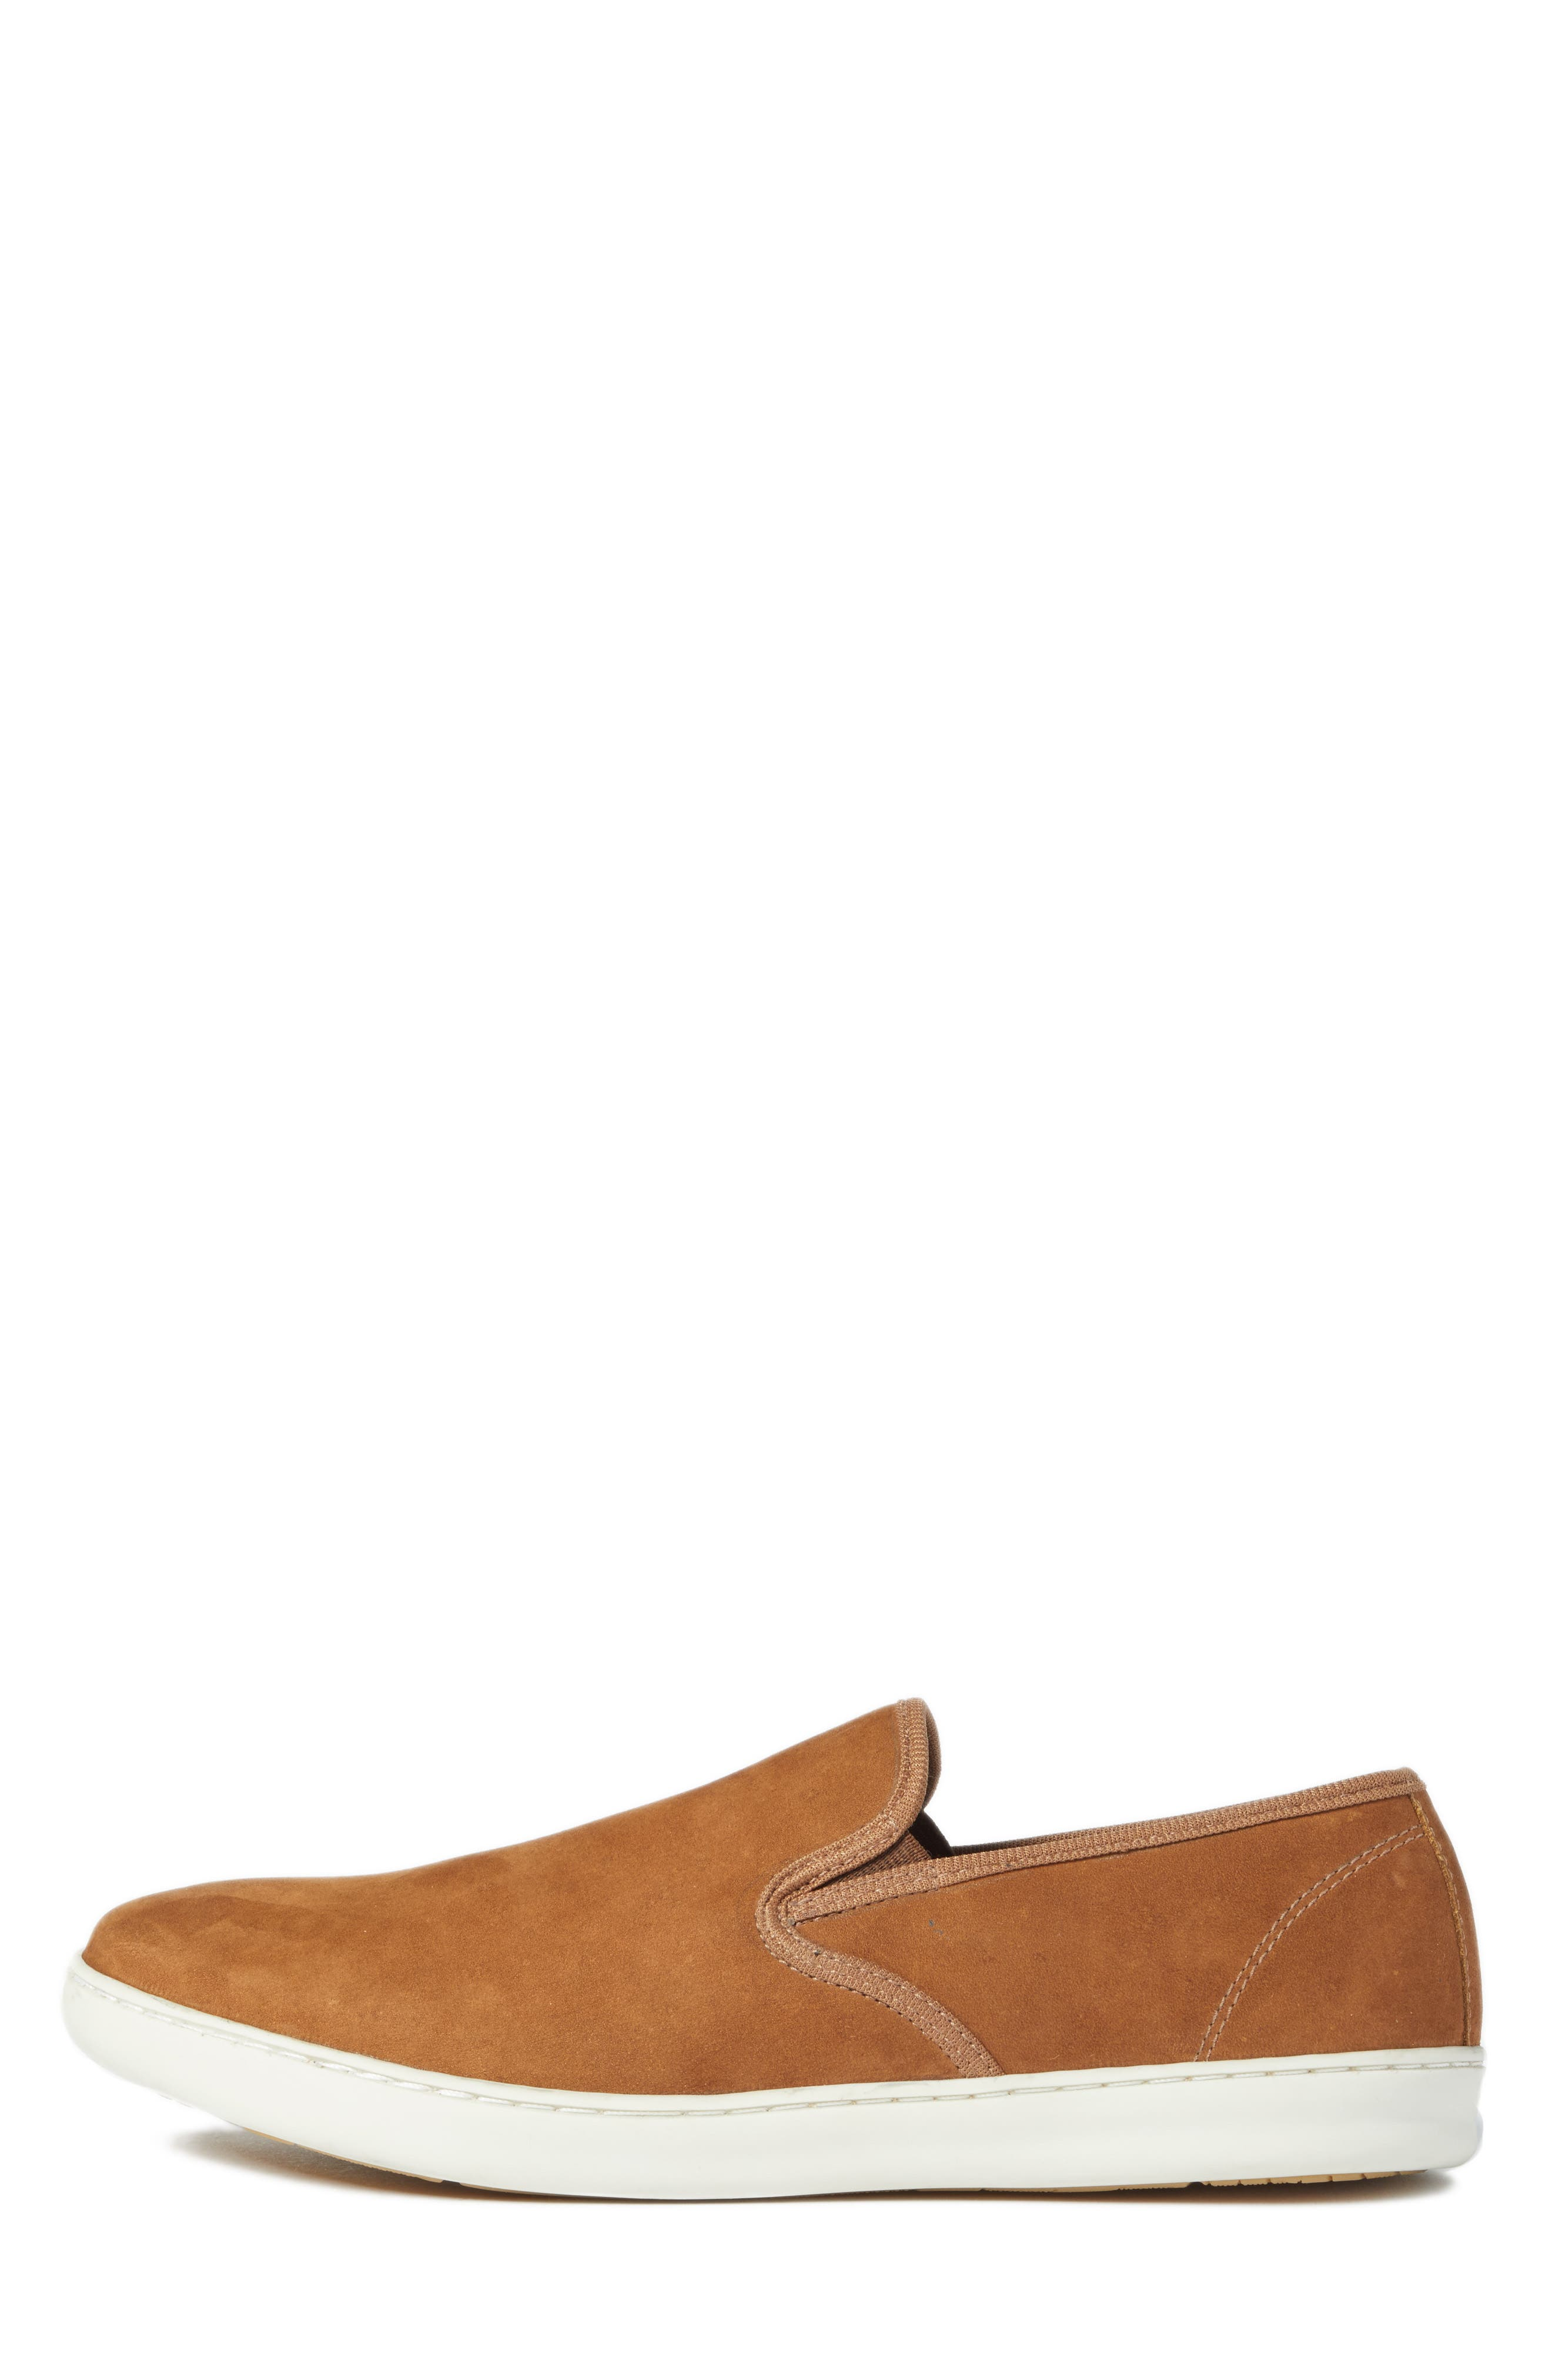 Malibu Slip-on,                             Alternate thumbnail 3, color,                             Tan Nubuck